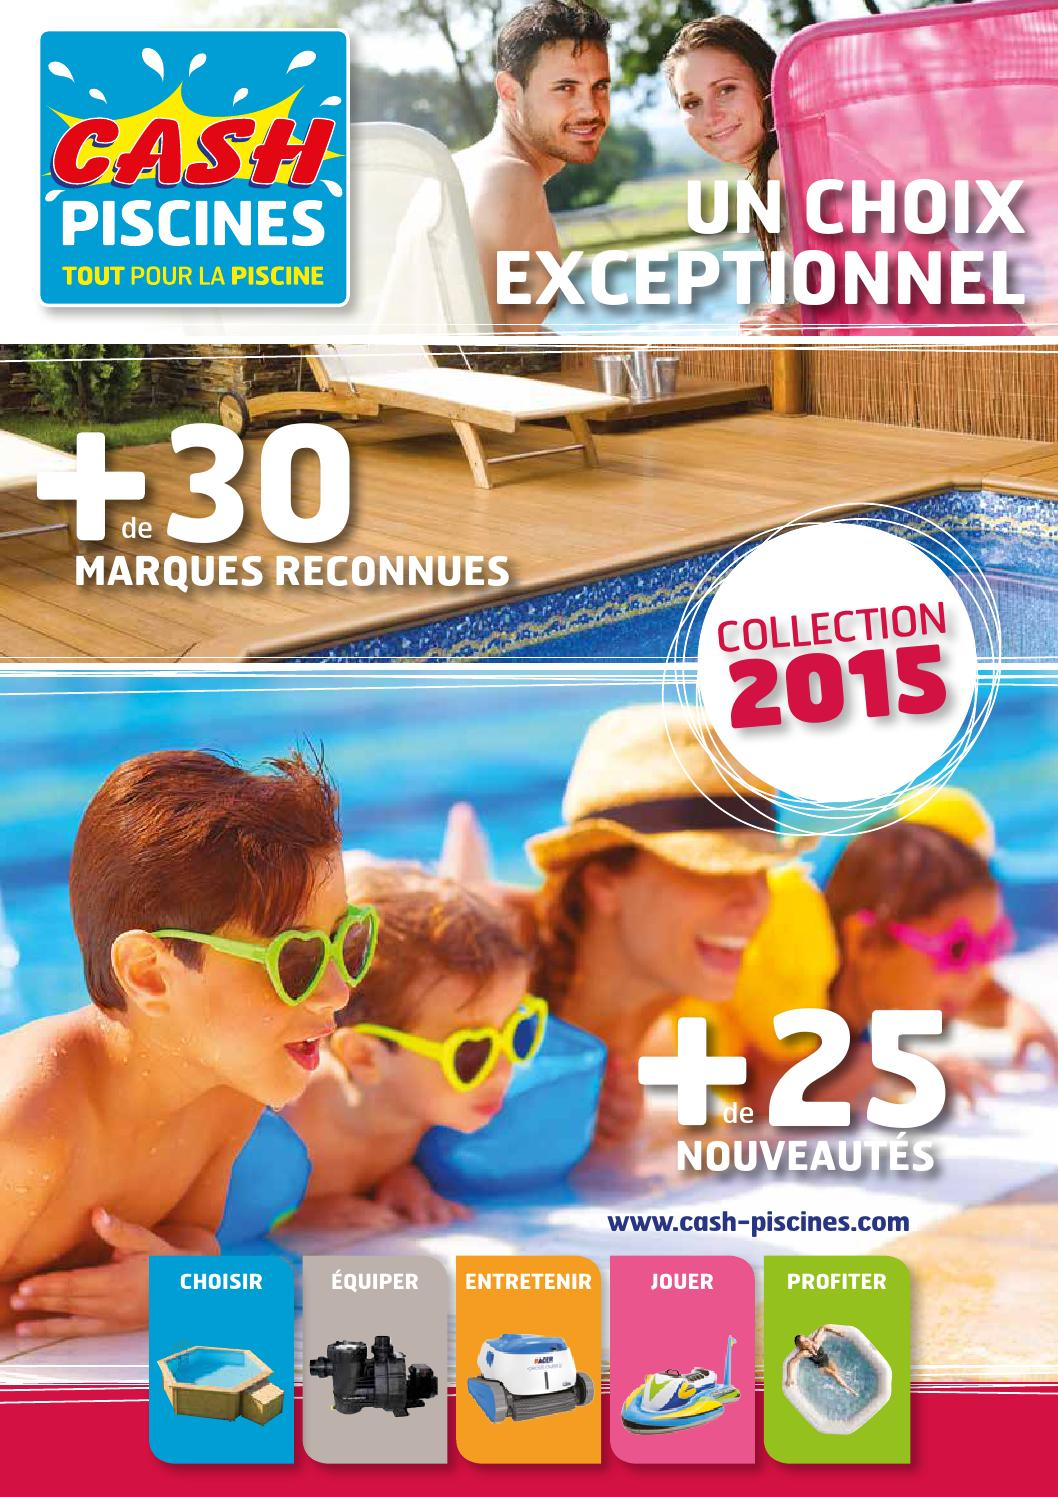 Catalogue cash piscines 2015 by octave octave issuu for Catalogue piscine